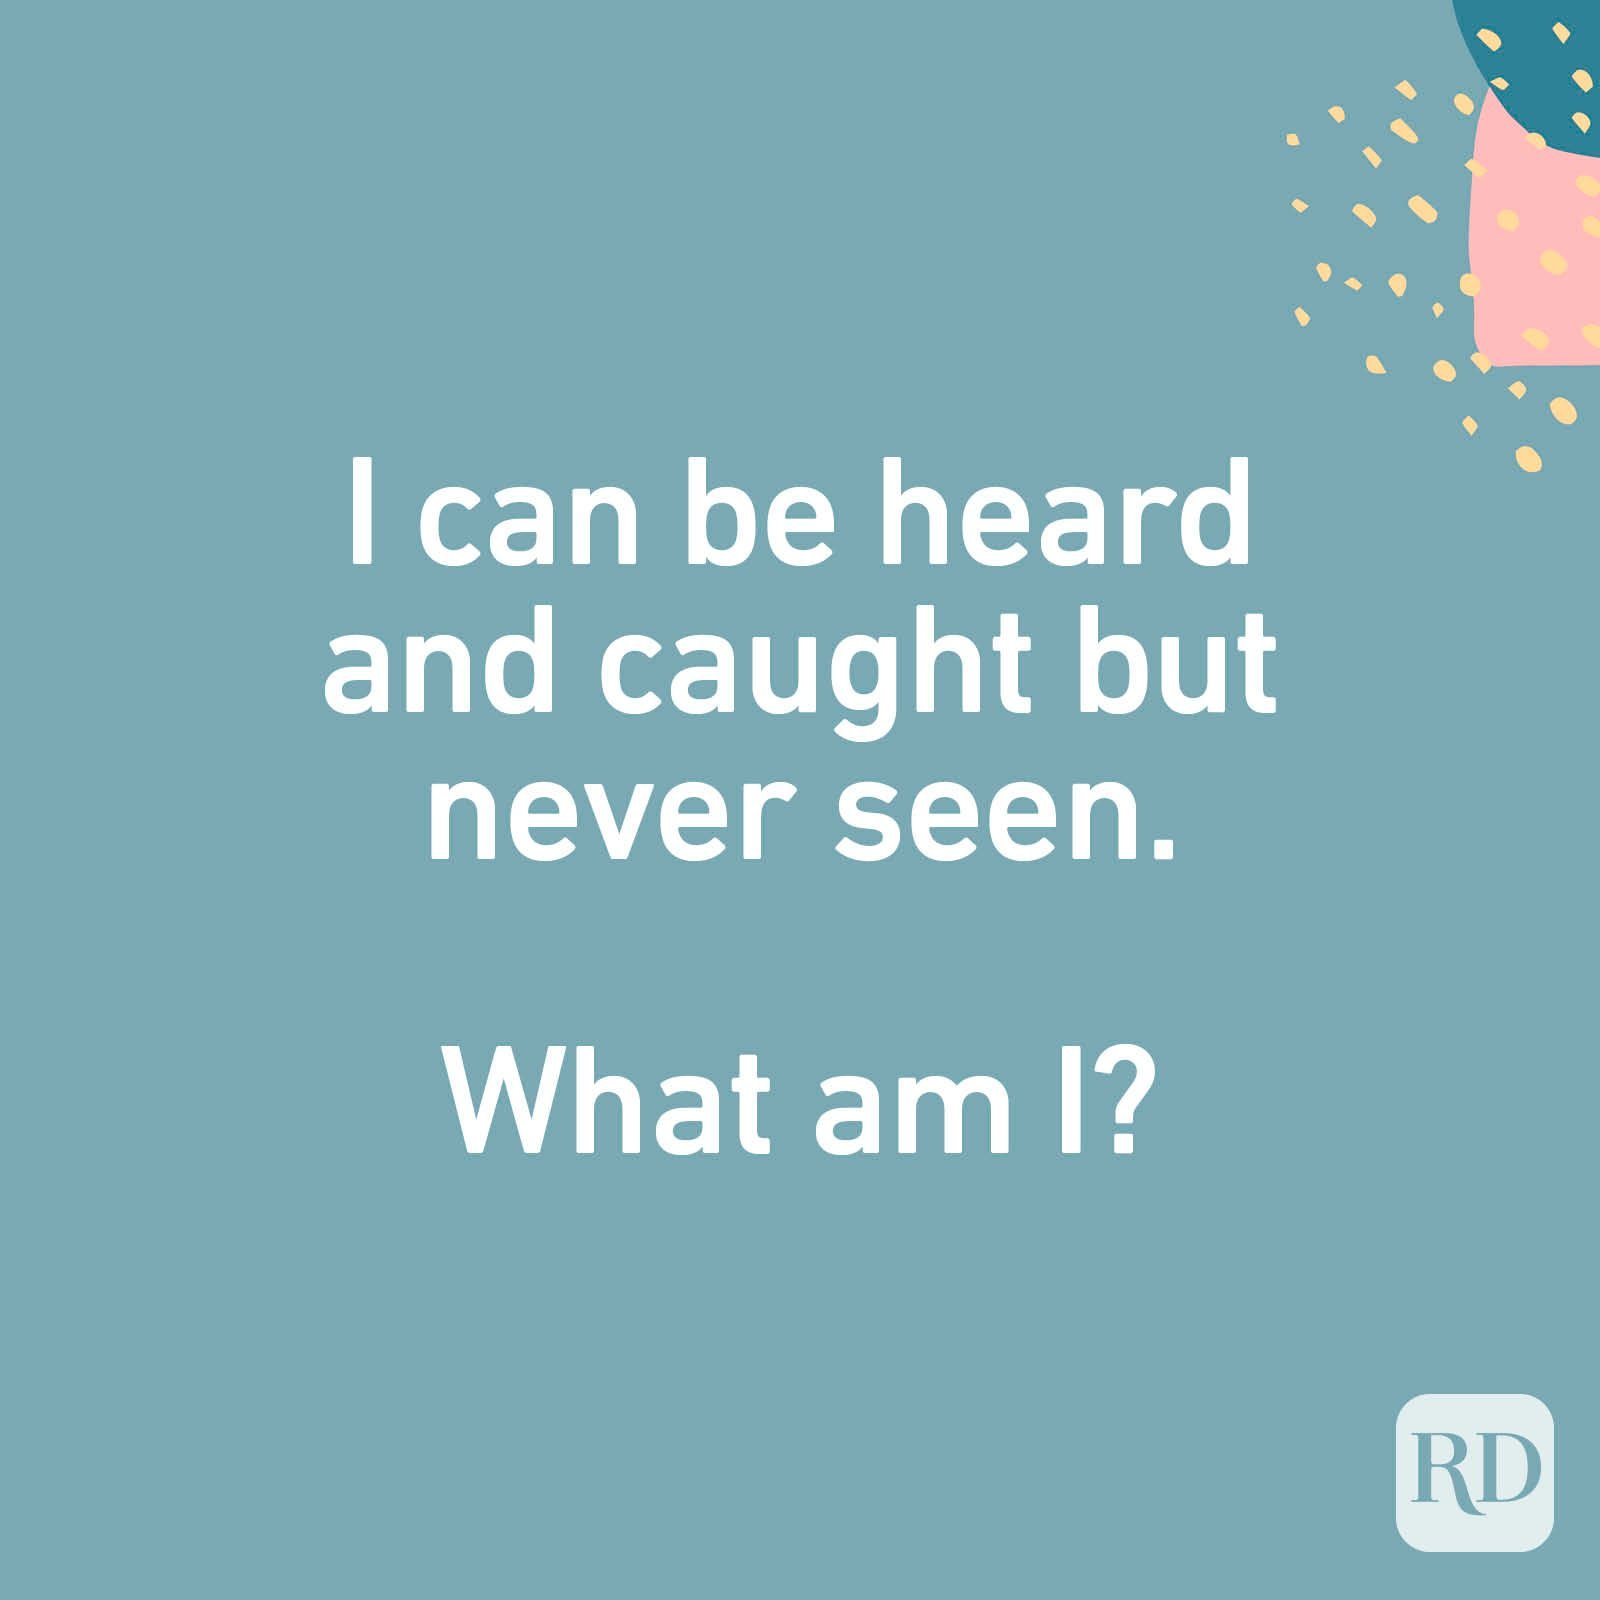 What can be heard and caught but never seen?